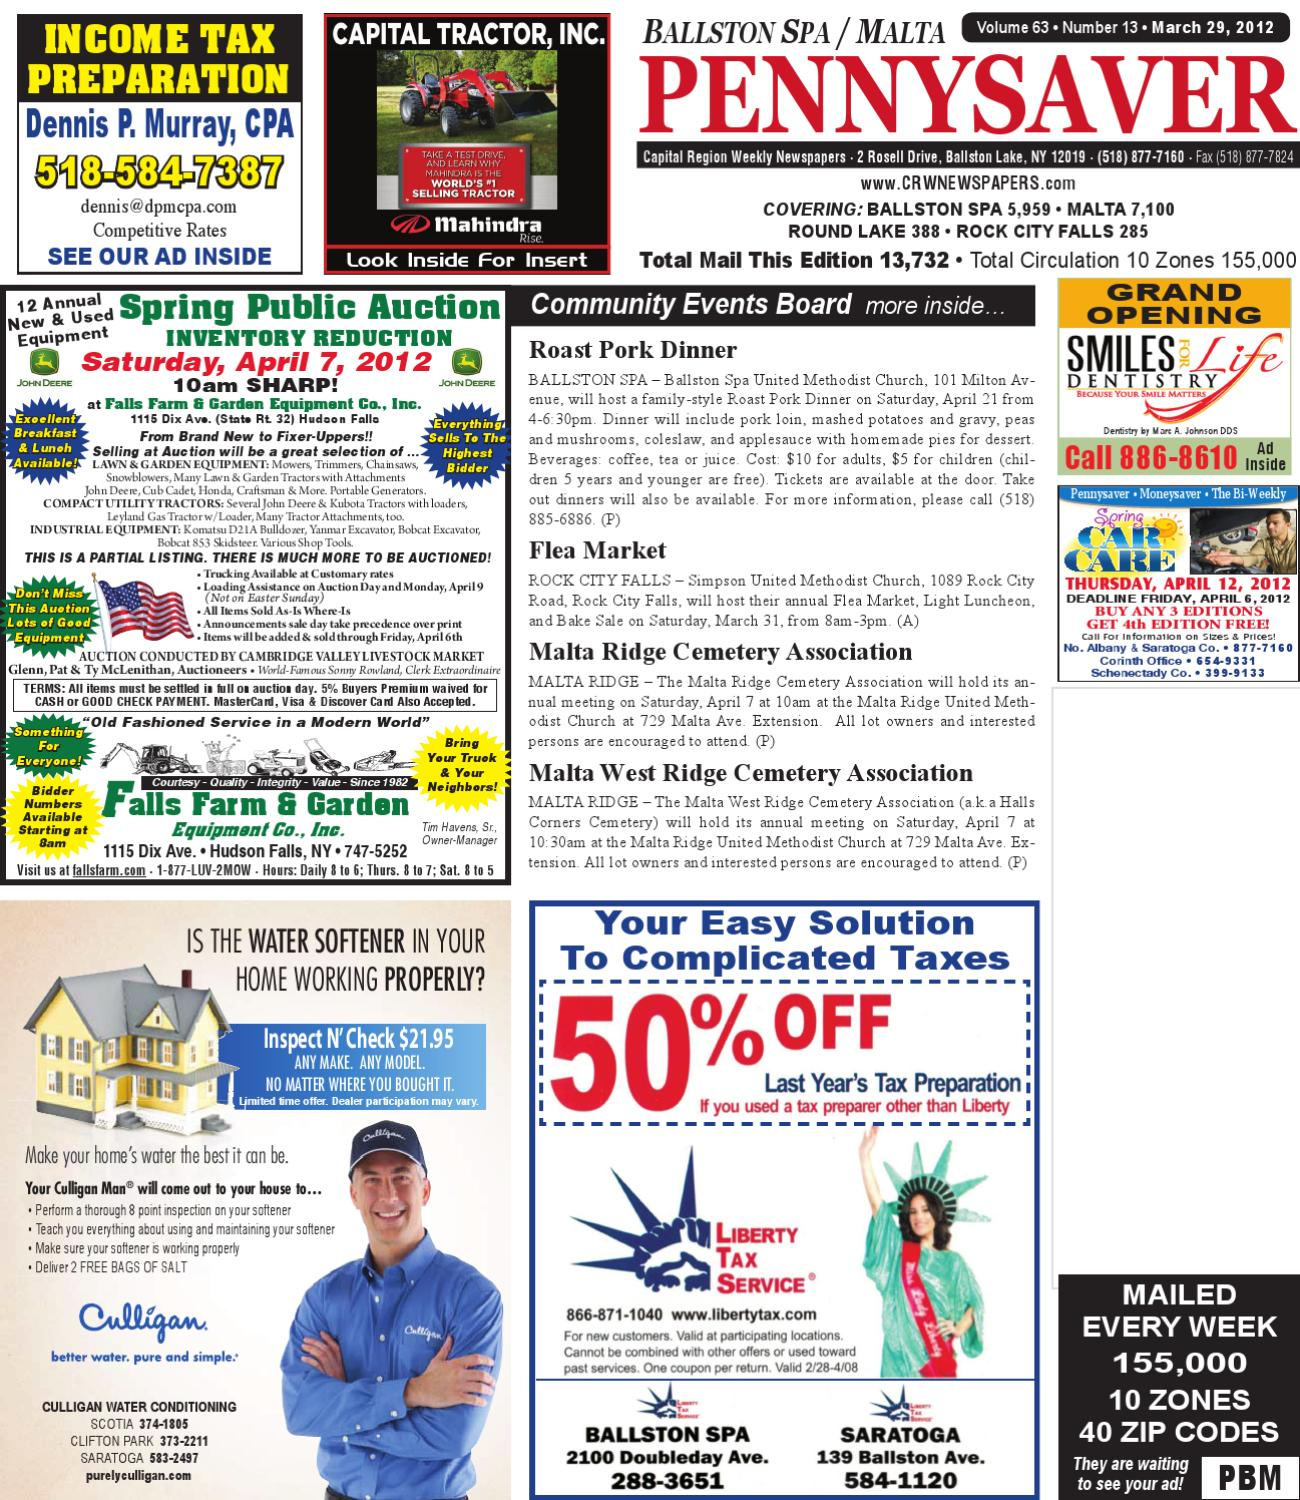 ballston spa malta pennysaver by capital region weekly